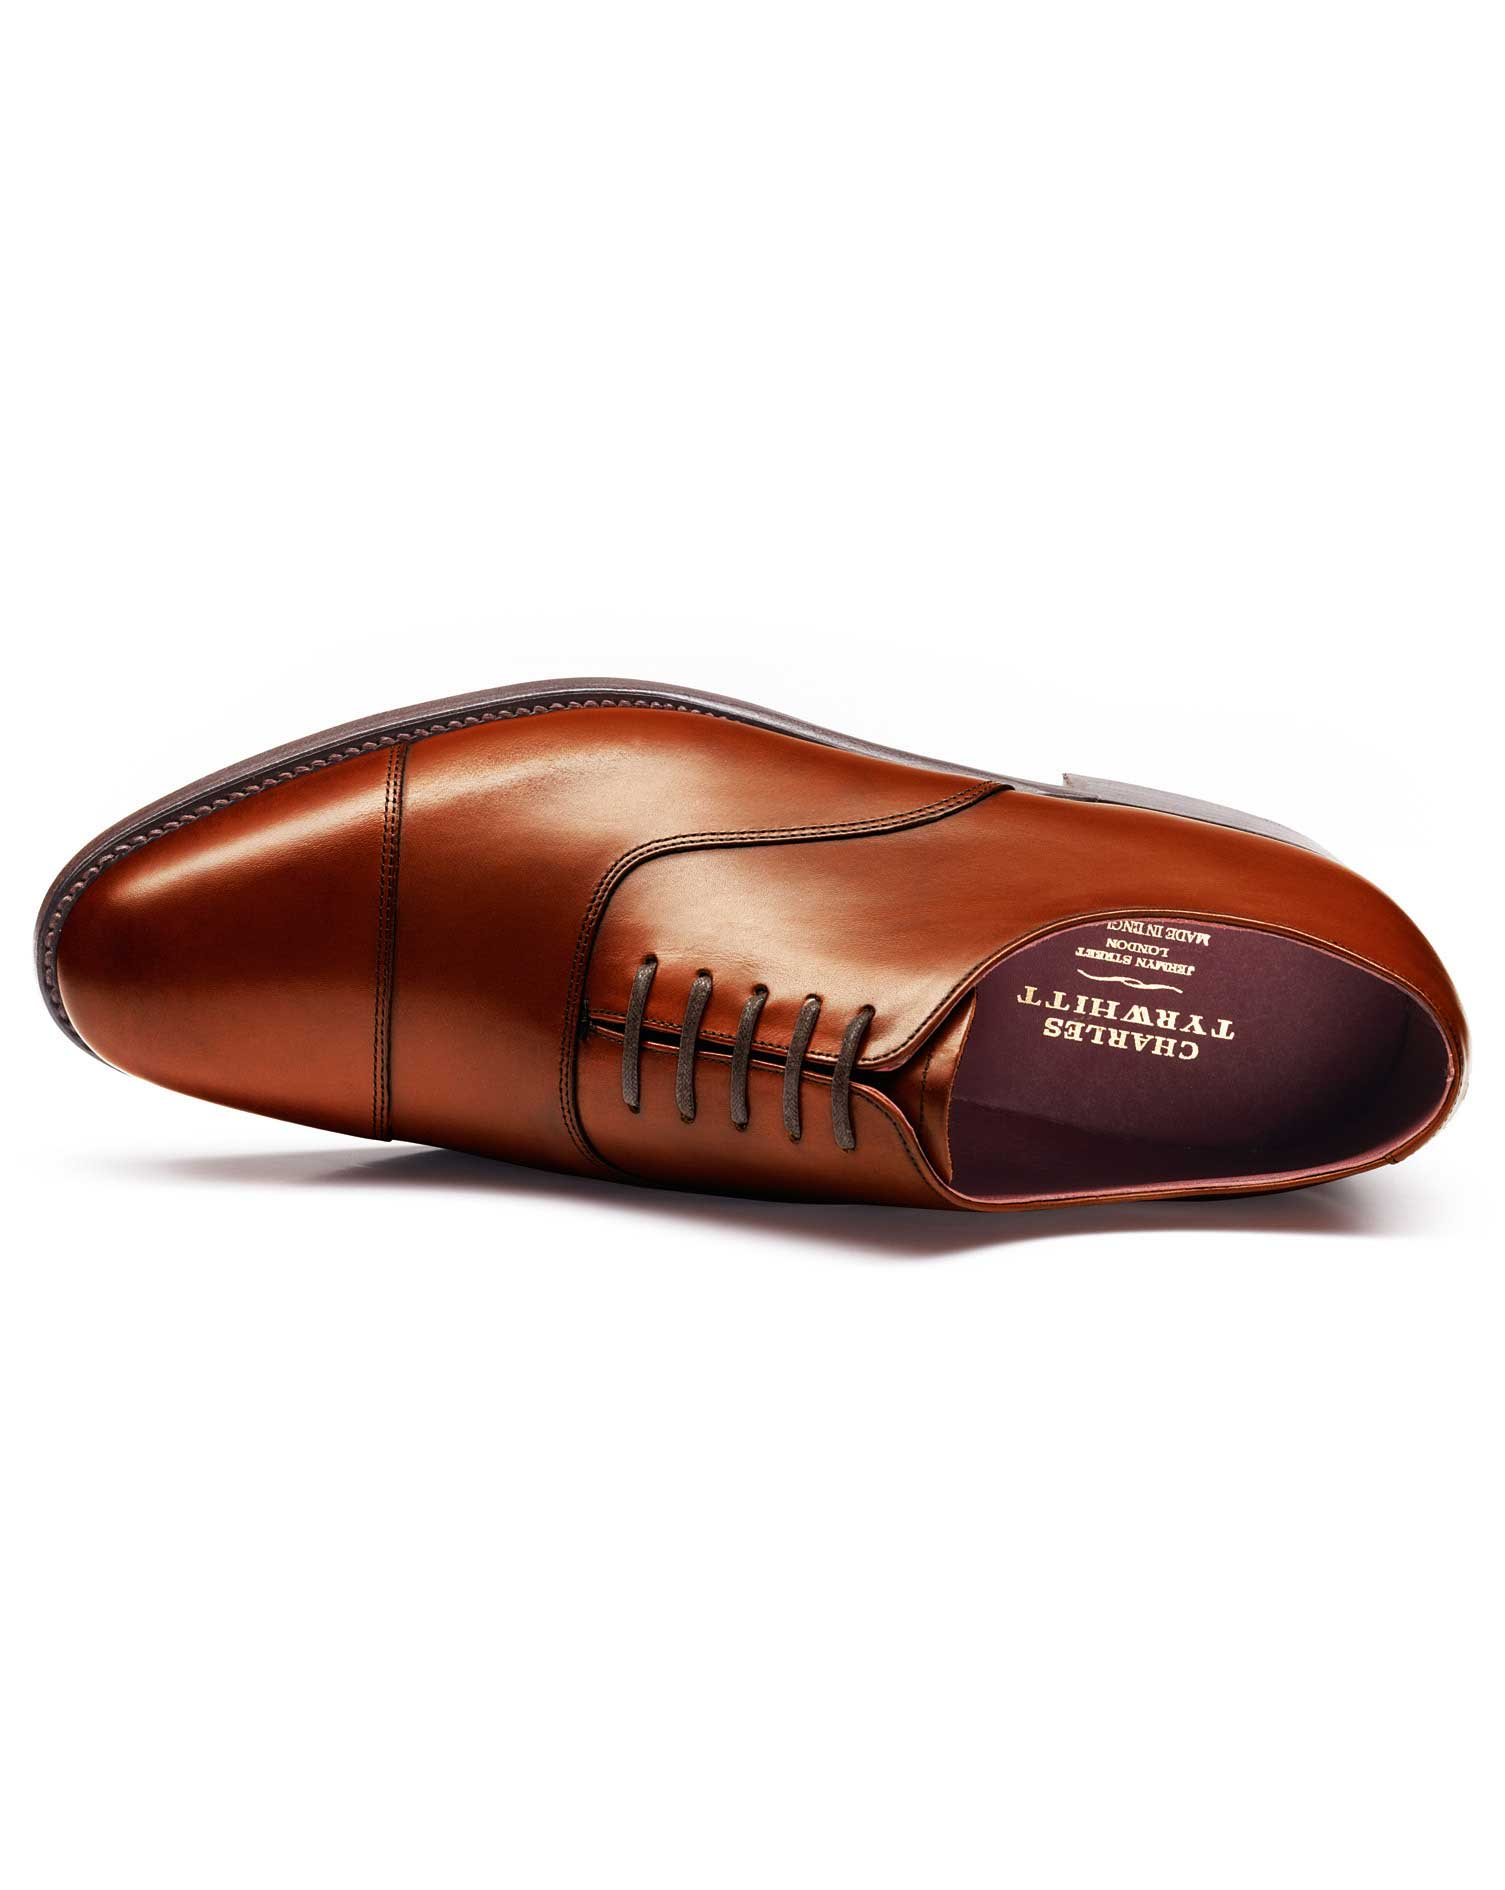 Brown Heathcote Calf Leather Toe Cap Oxford Shoes Size 8 R by Charles Tyrwhitt